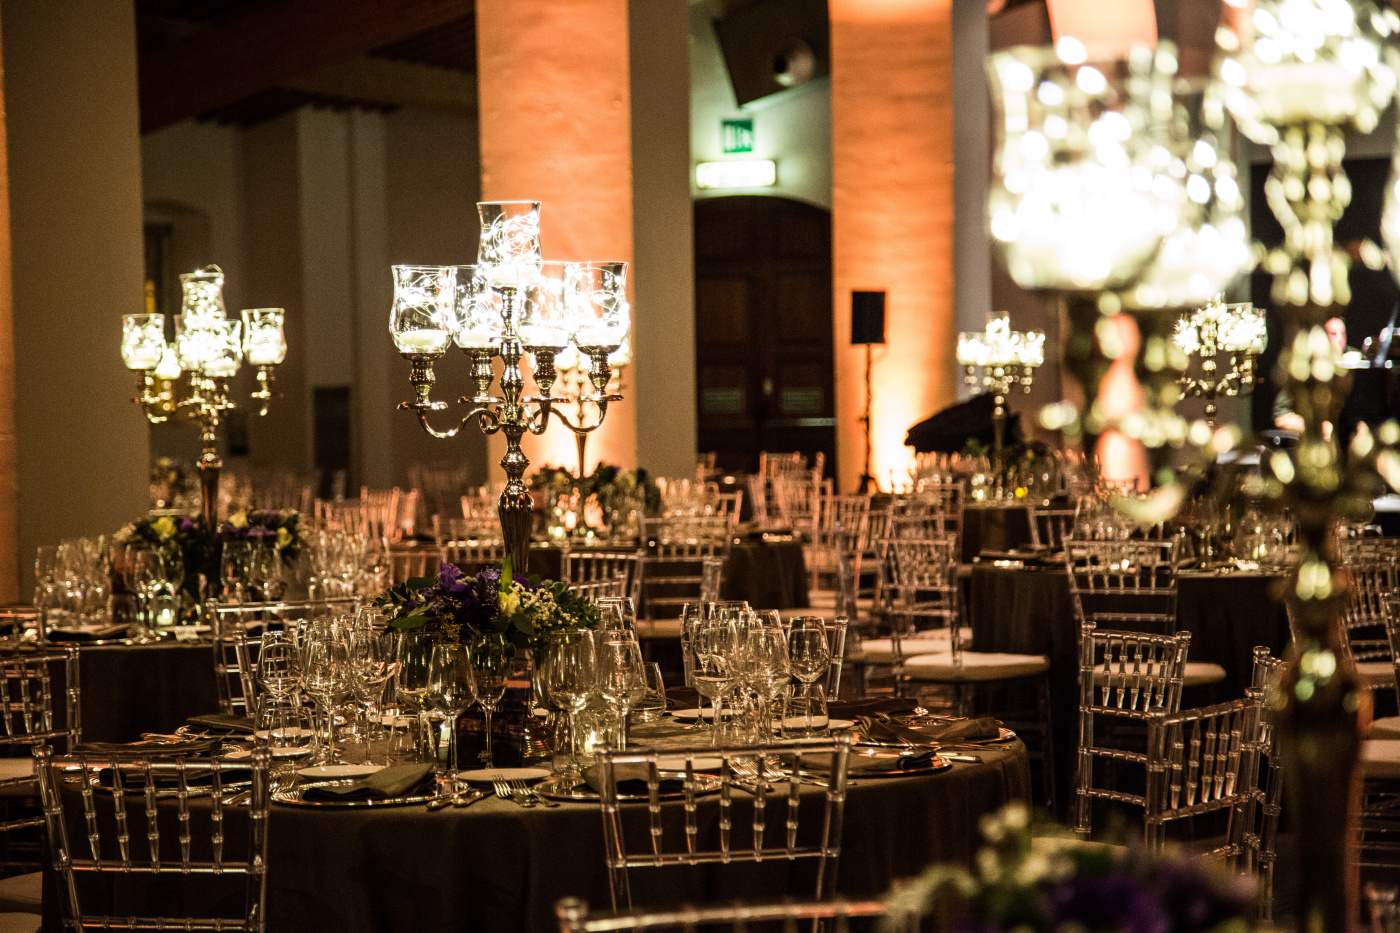 Corporate event for international bank with silver candelabras and round tables